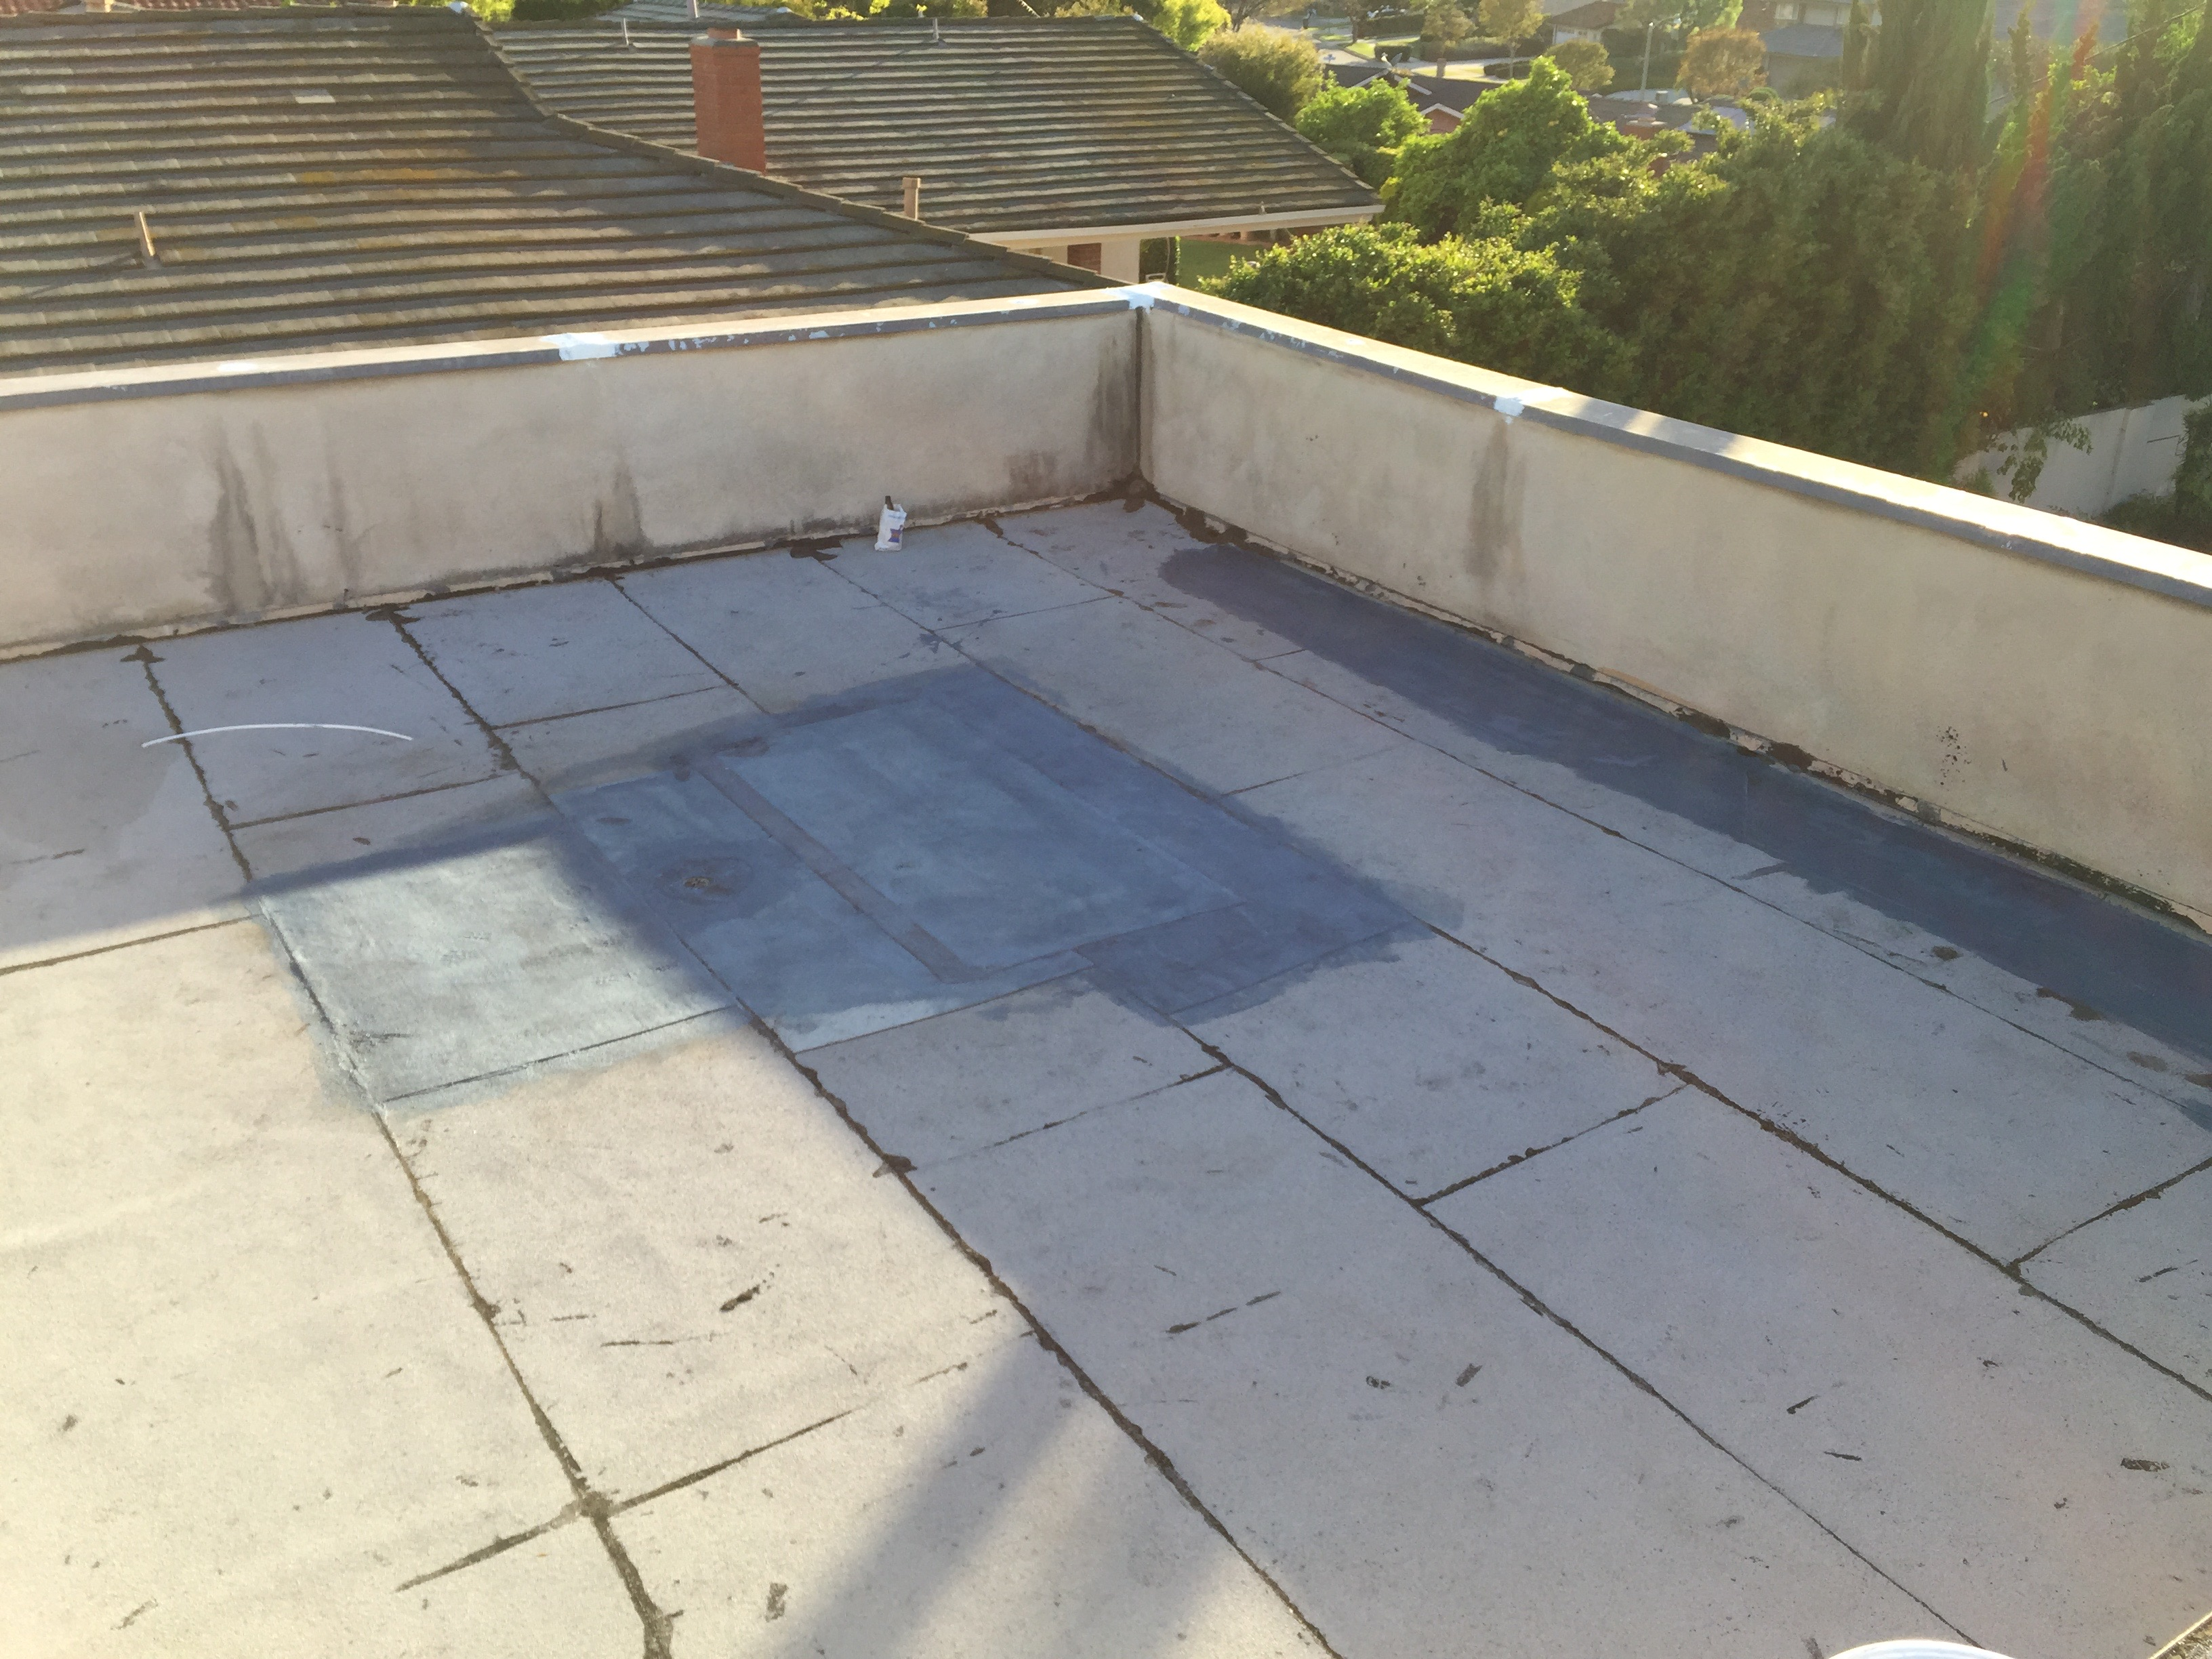 Flat roof solar guard coating system waterproofing for Flat roof waterproofing paint